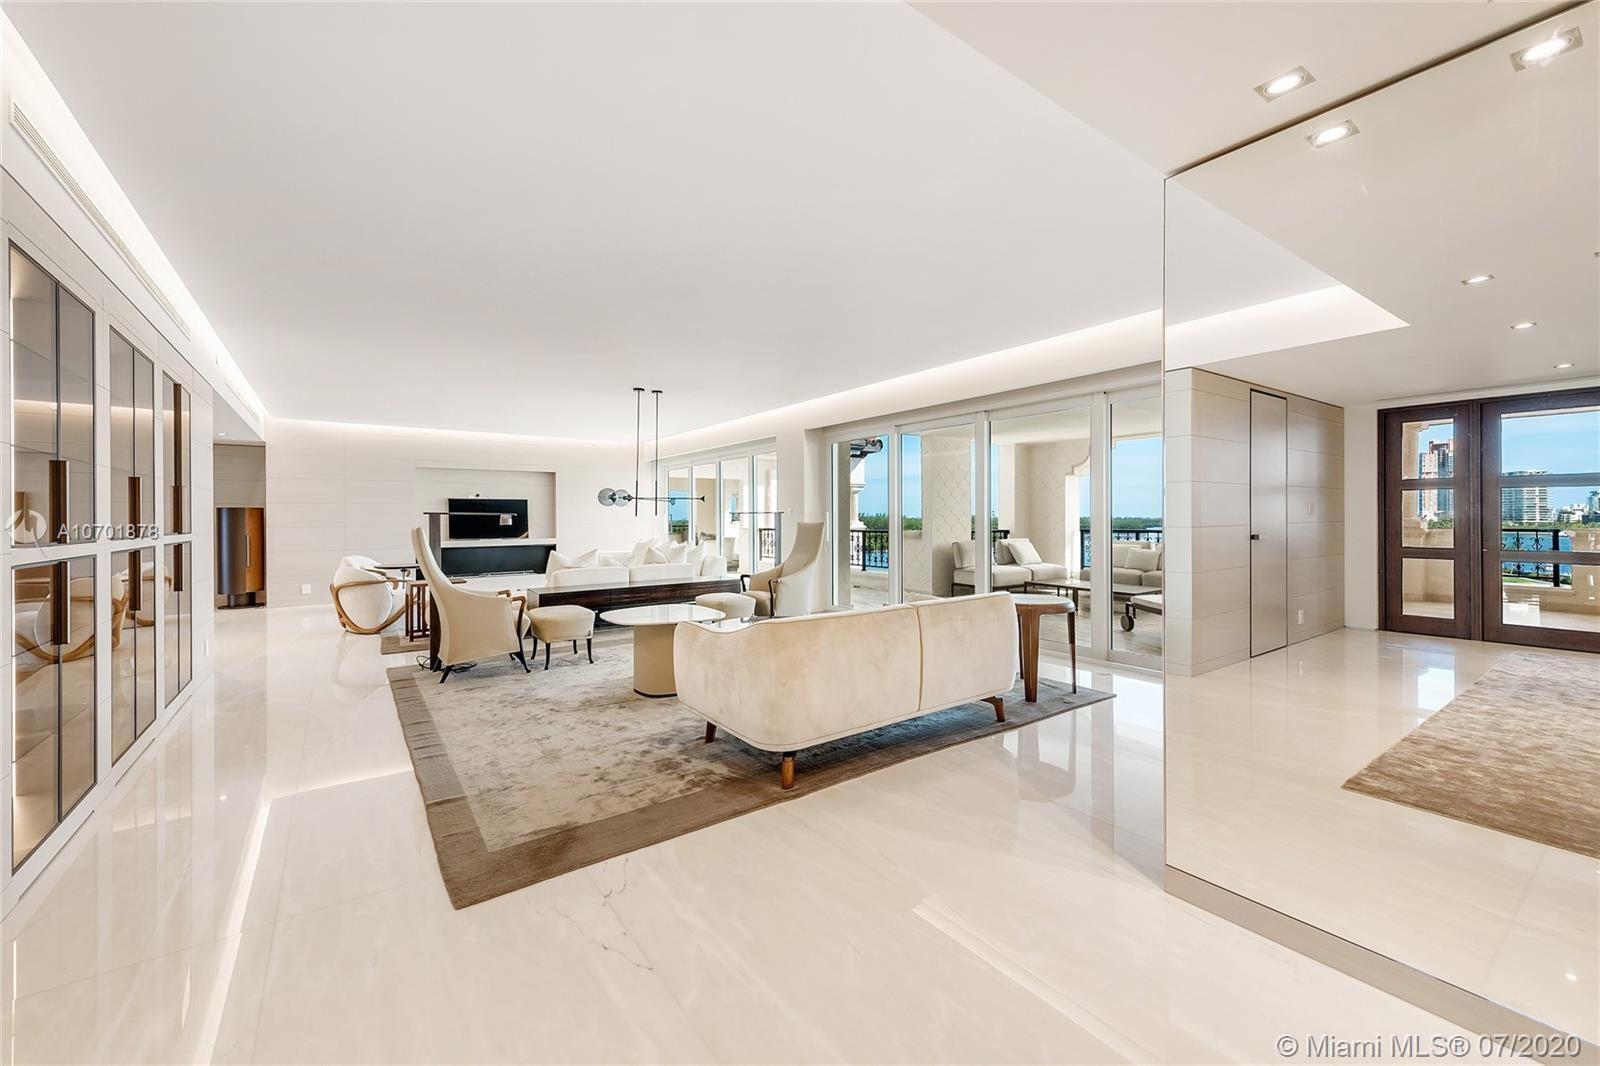 Photo 5 of Listing MLS a10701878 in 5292 Fisher Island Dr #5292 Miami FL 33109